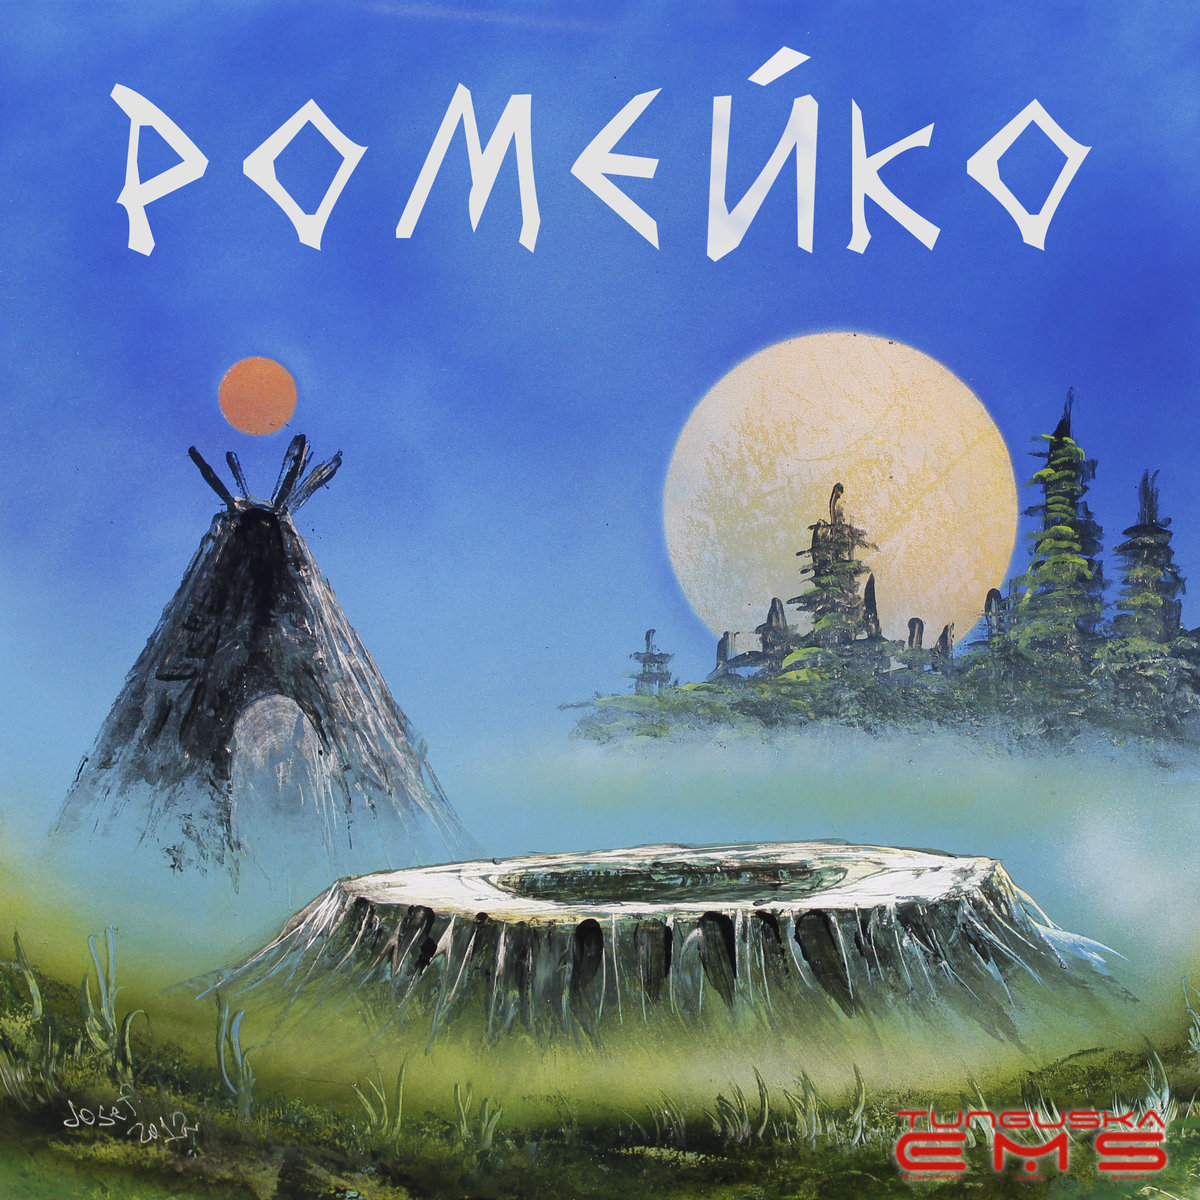 Monolok - Indian @ 'Craters - Romeiko' album (electronic, ambient)